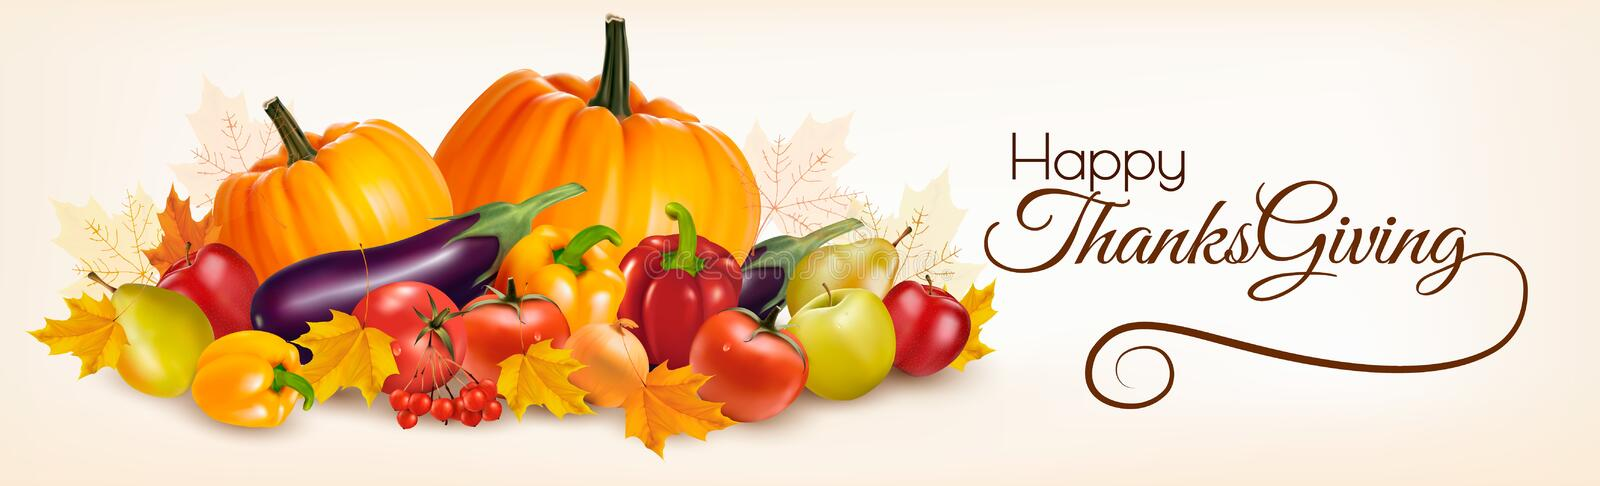 Happy Thanksgiving banner with autumn vegetables. stock photos